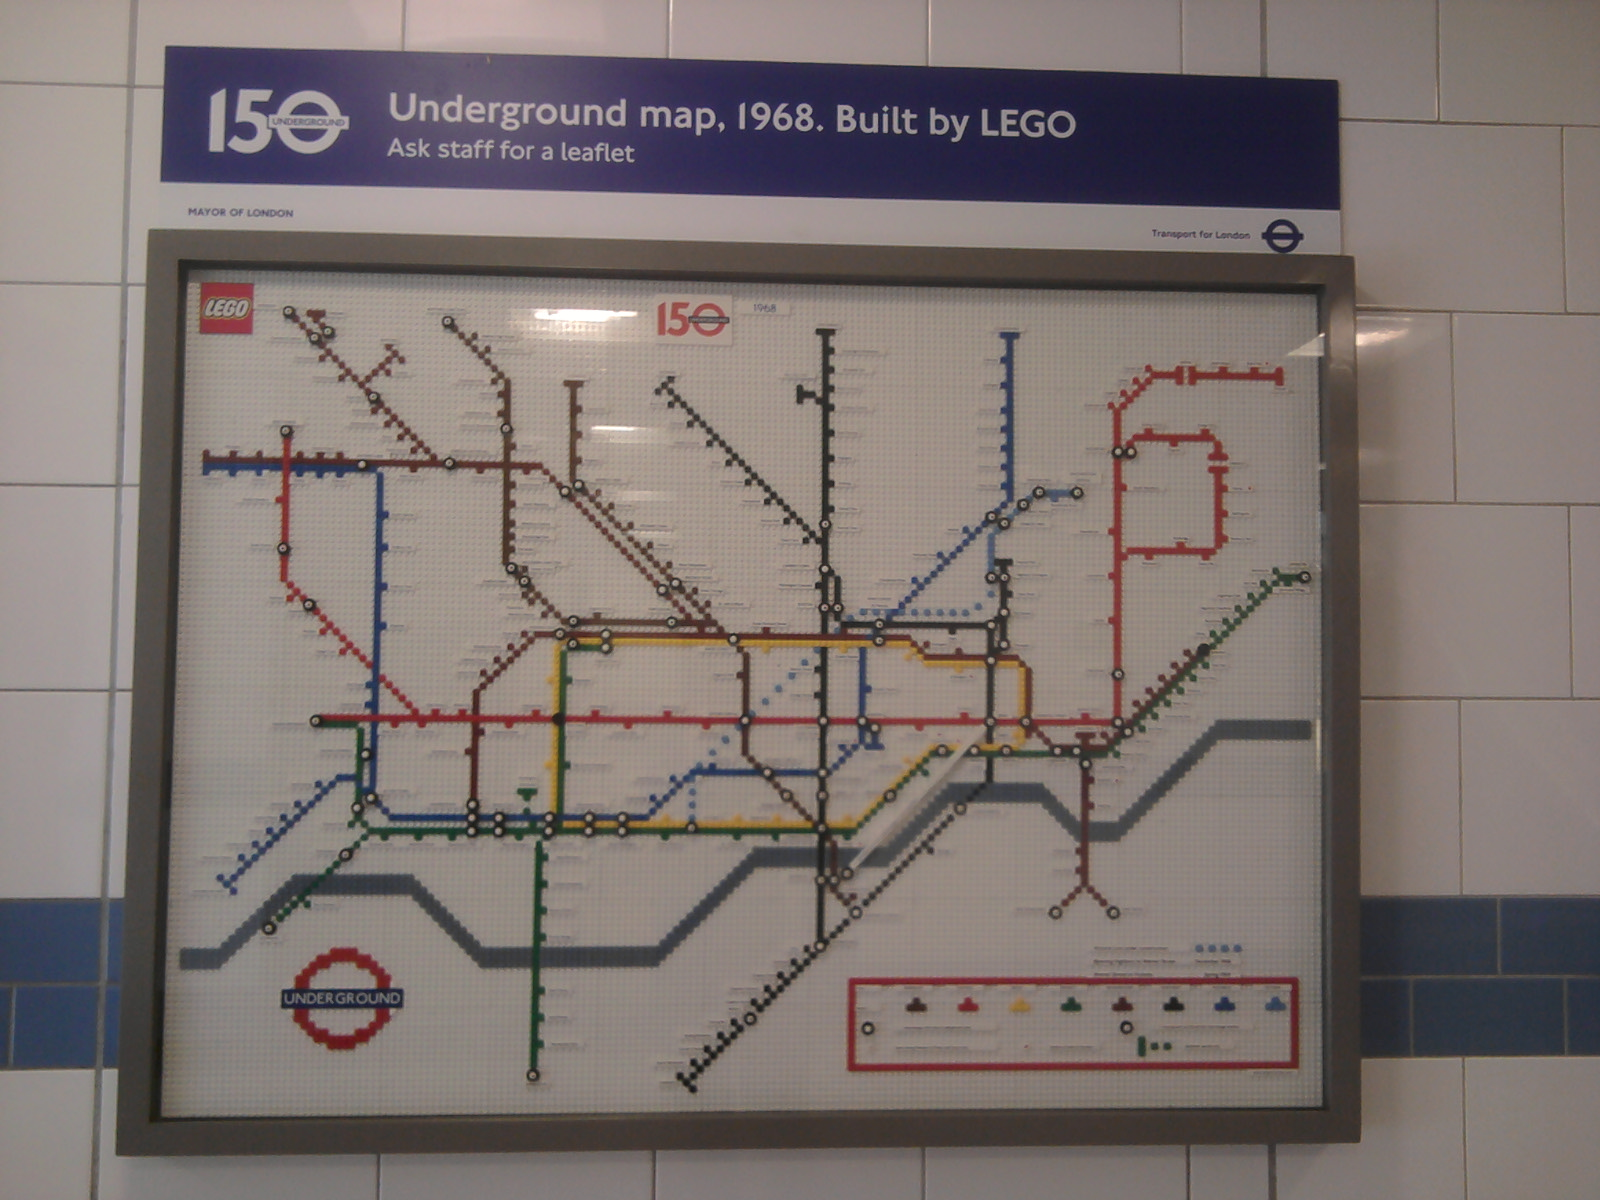 LEGO 1968 Underground map at Green Park